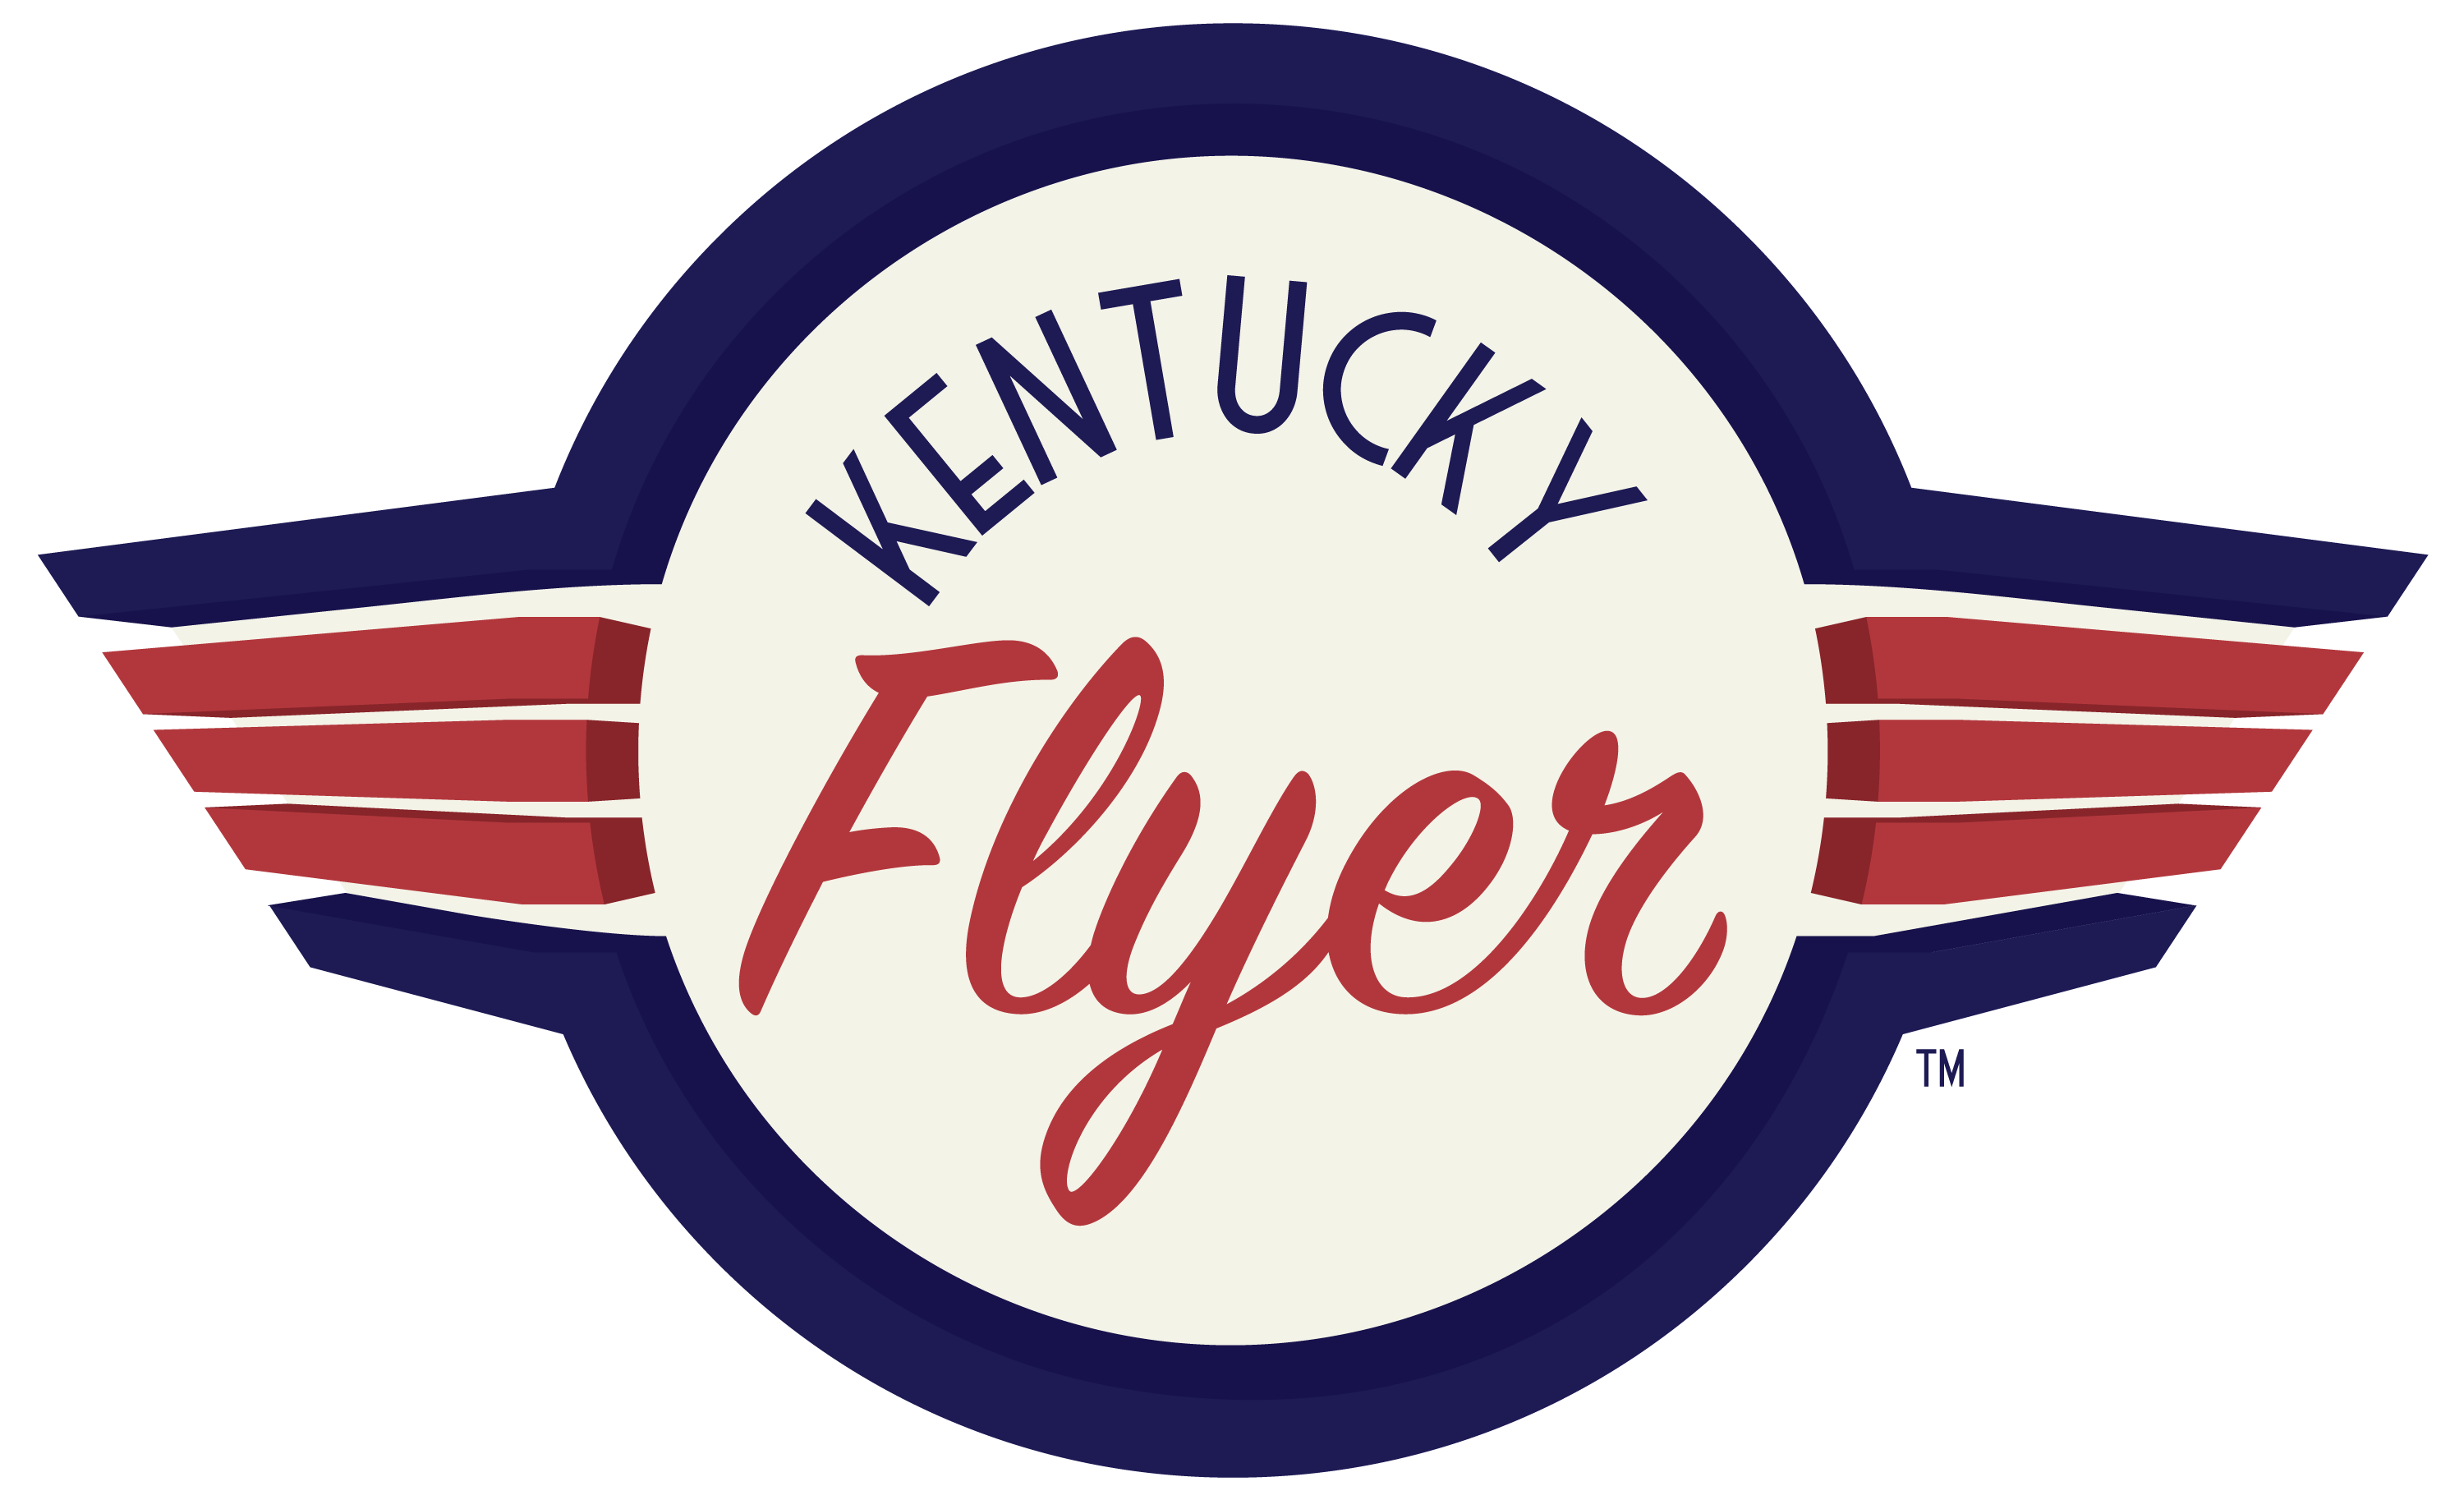 kentucky flyer logo